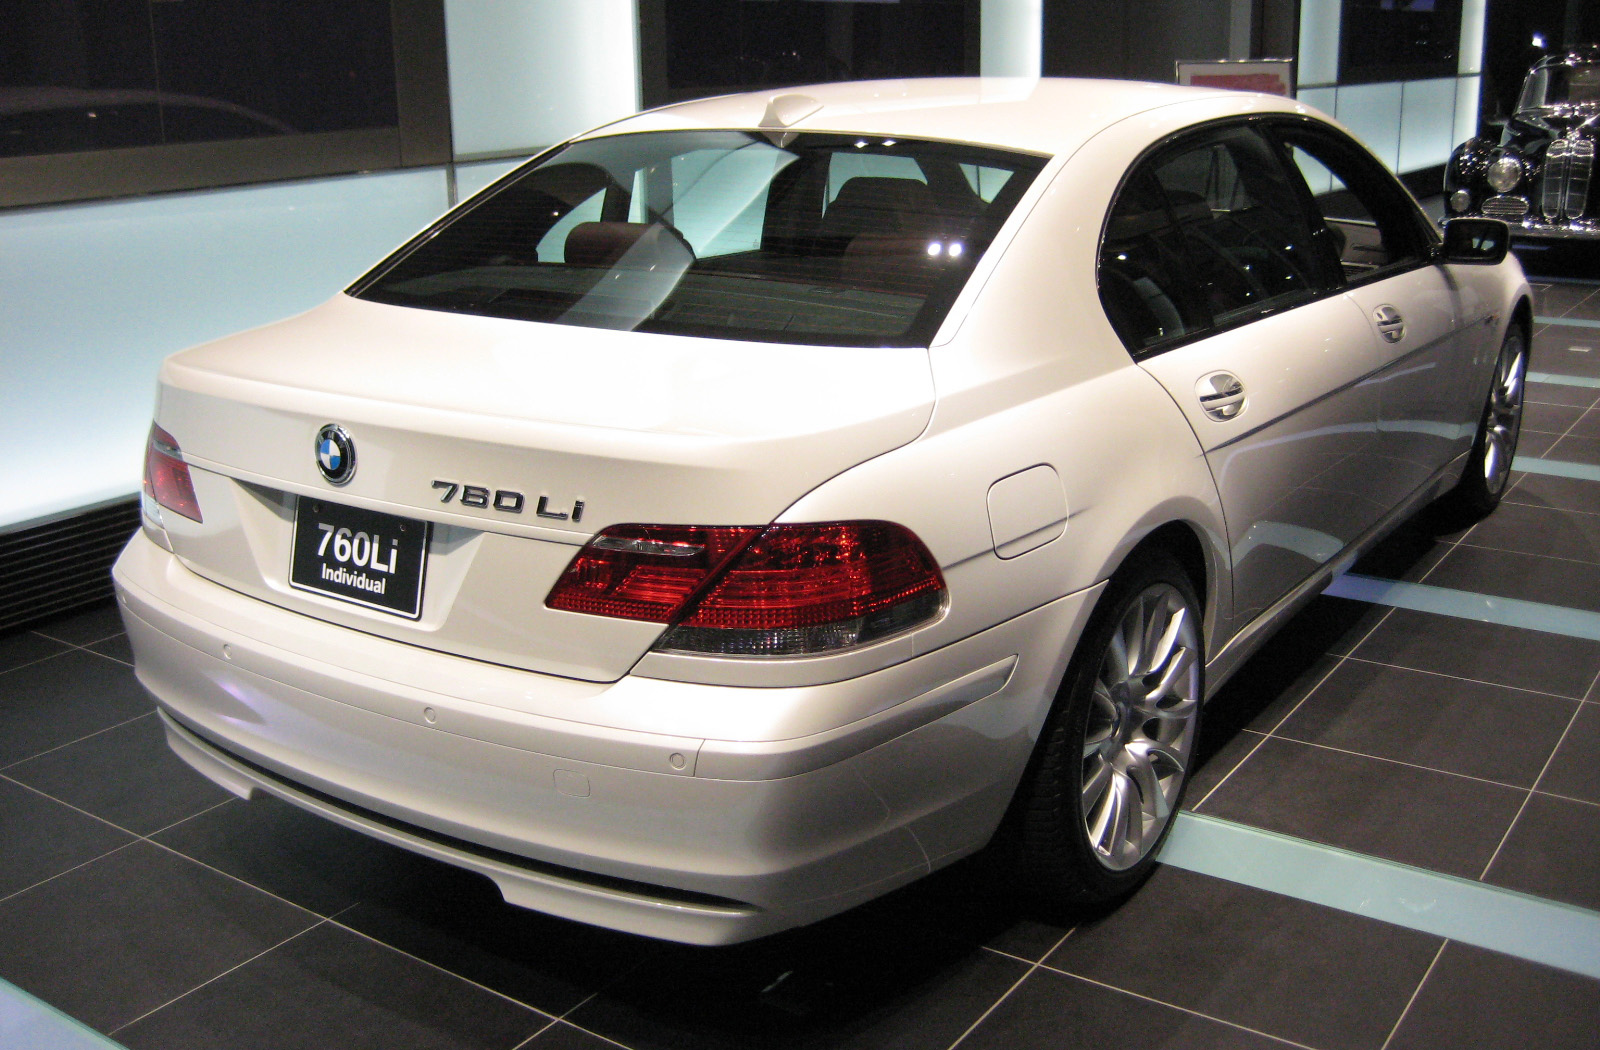 Description BMW E66 760Li 02.JPG